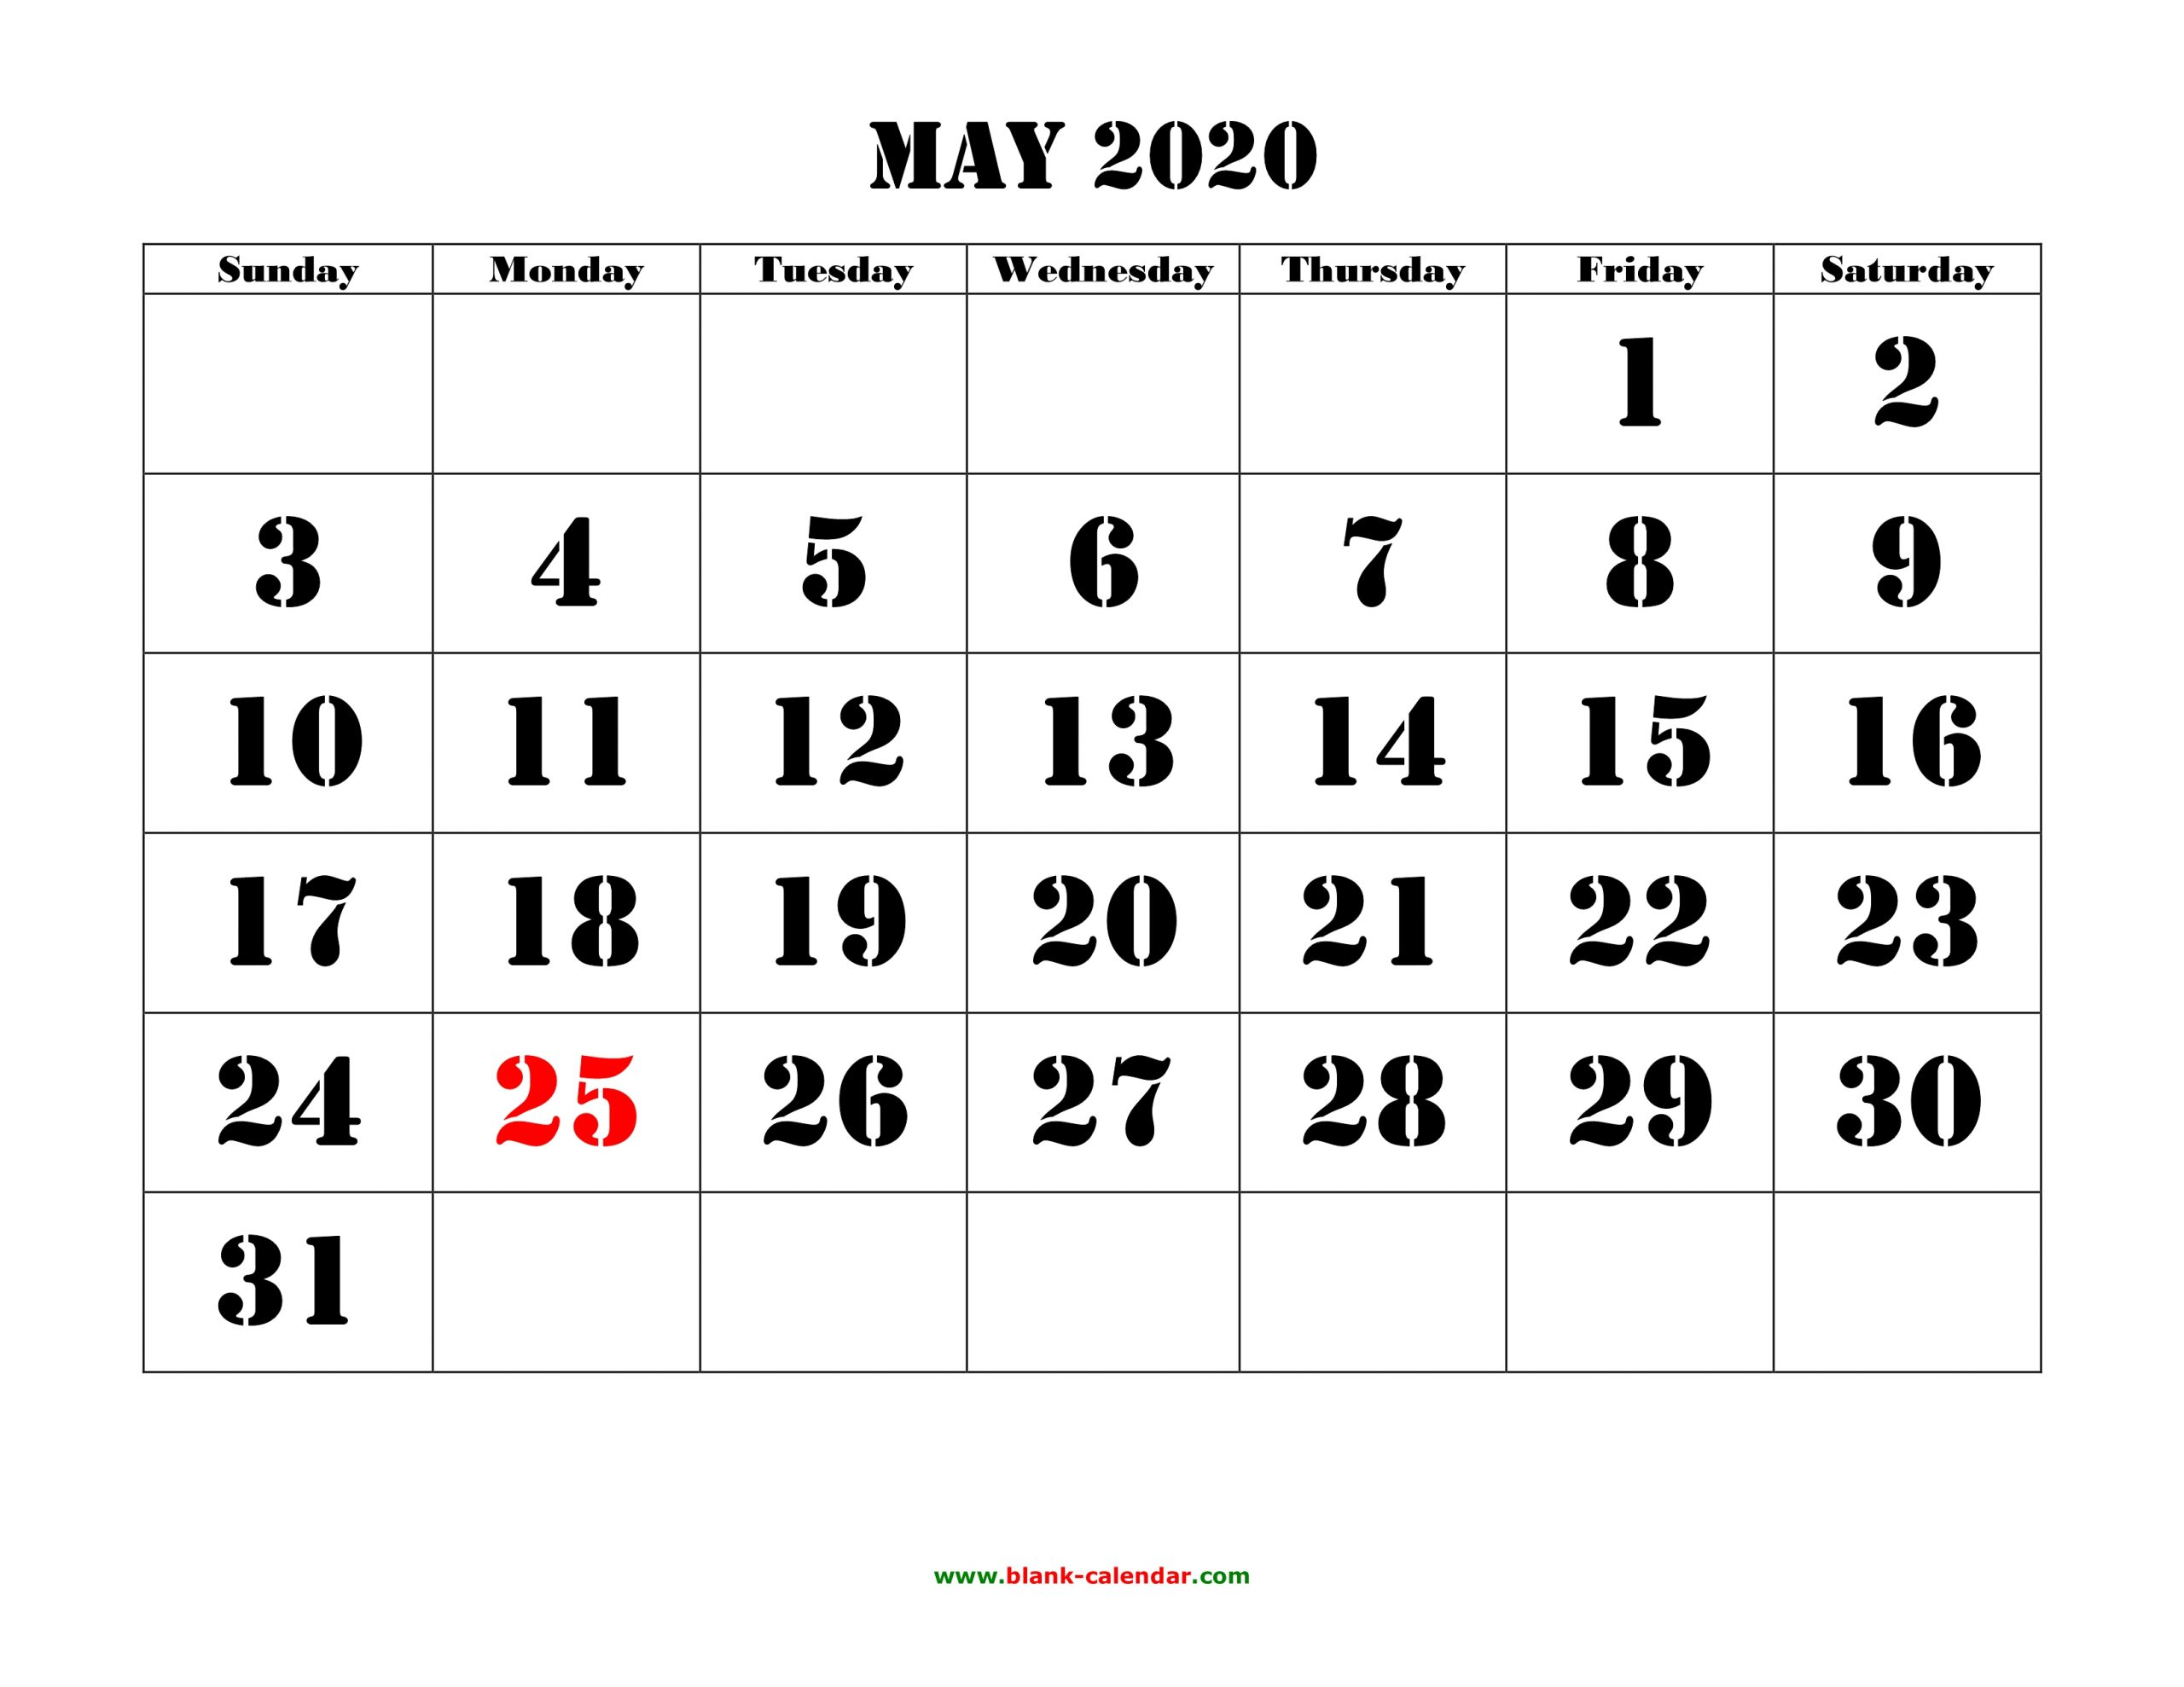 Free Download Printable May 2020 Calendar, Large Font Design